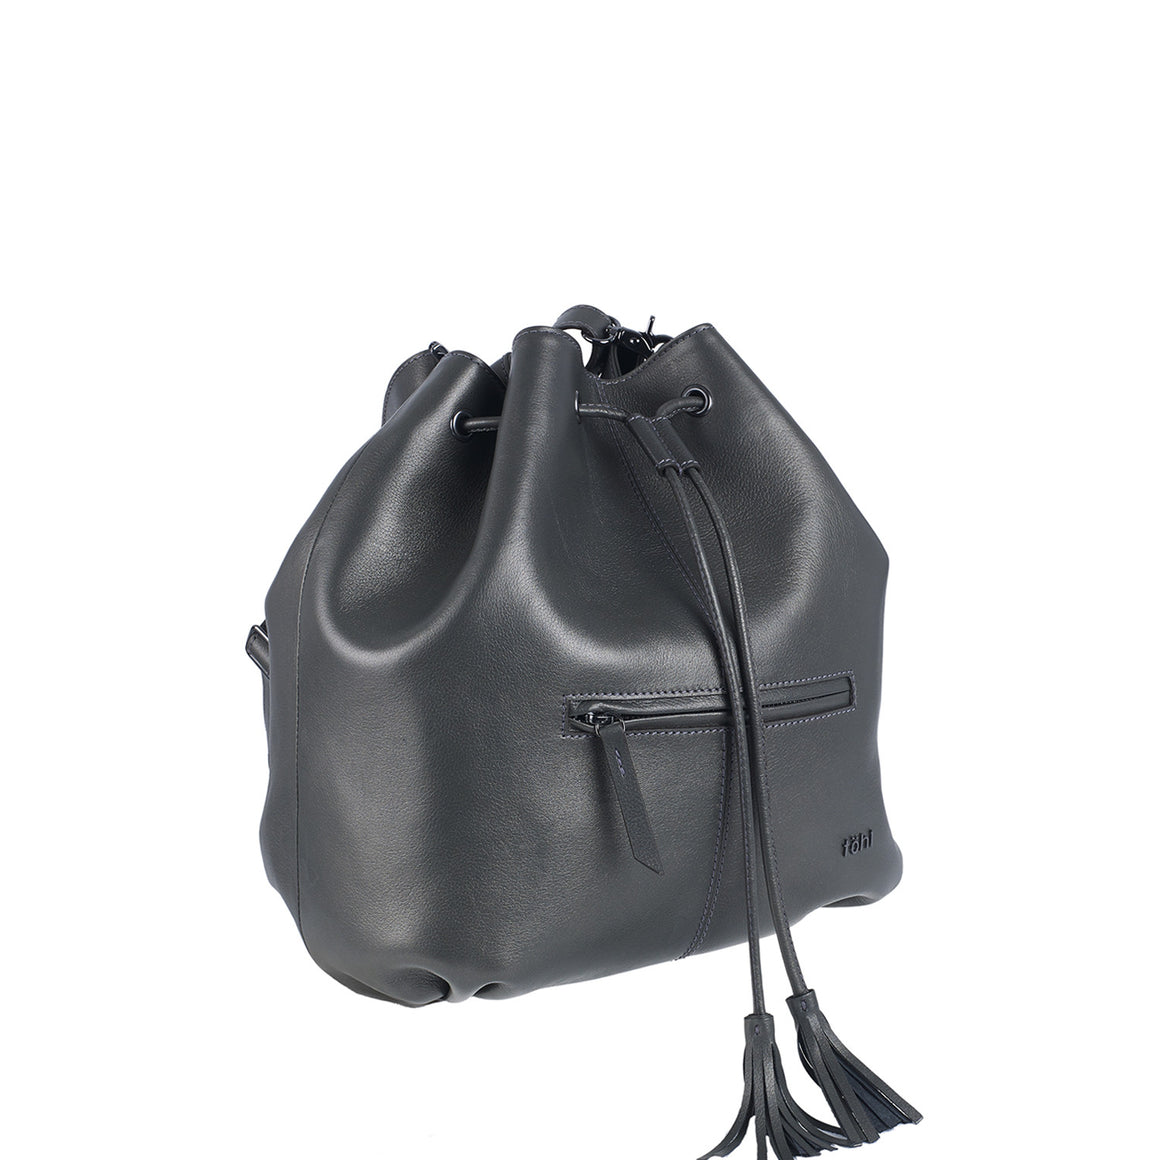 BP 0002 - TOHL MONTAUK WOMEN'S DRAWCORD BUCKET BAG - METALLIC SMOKE